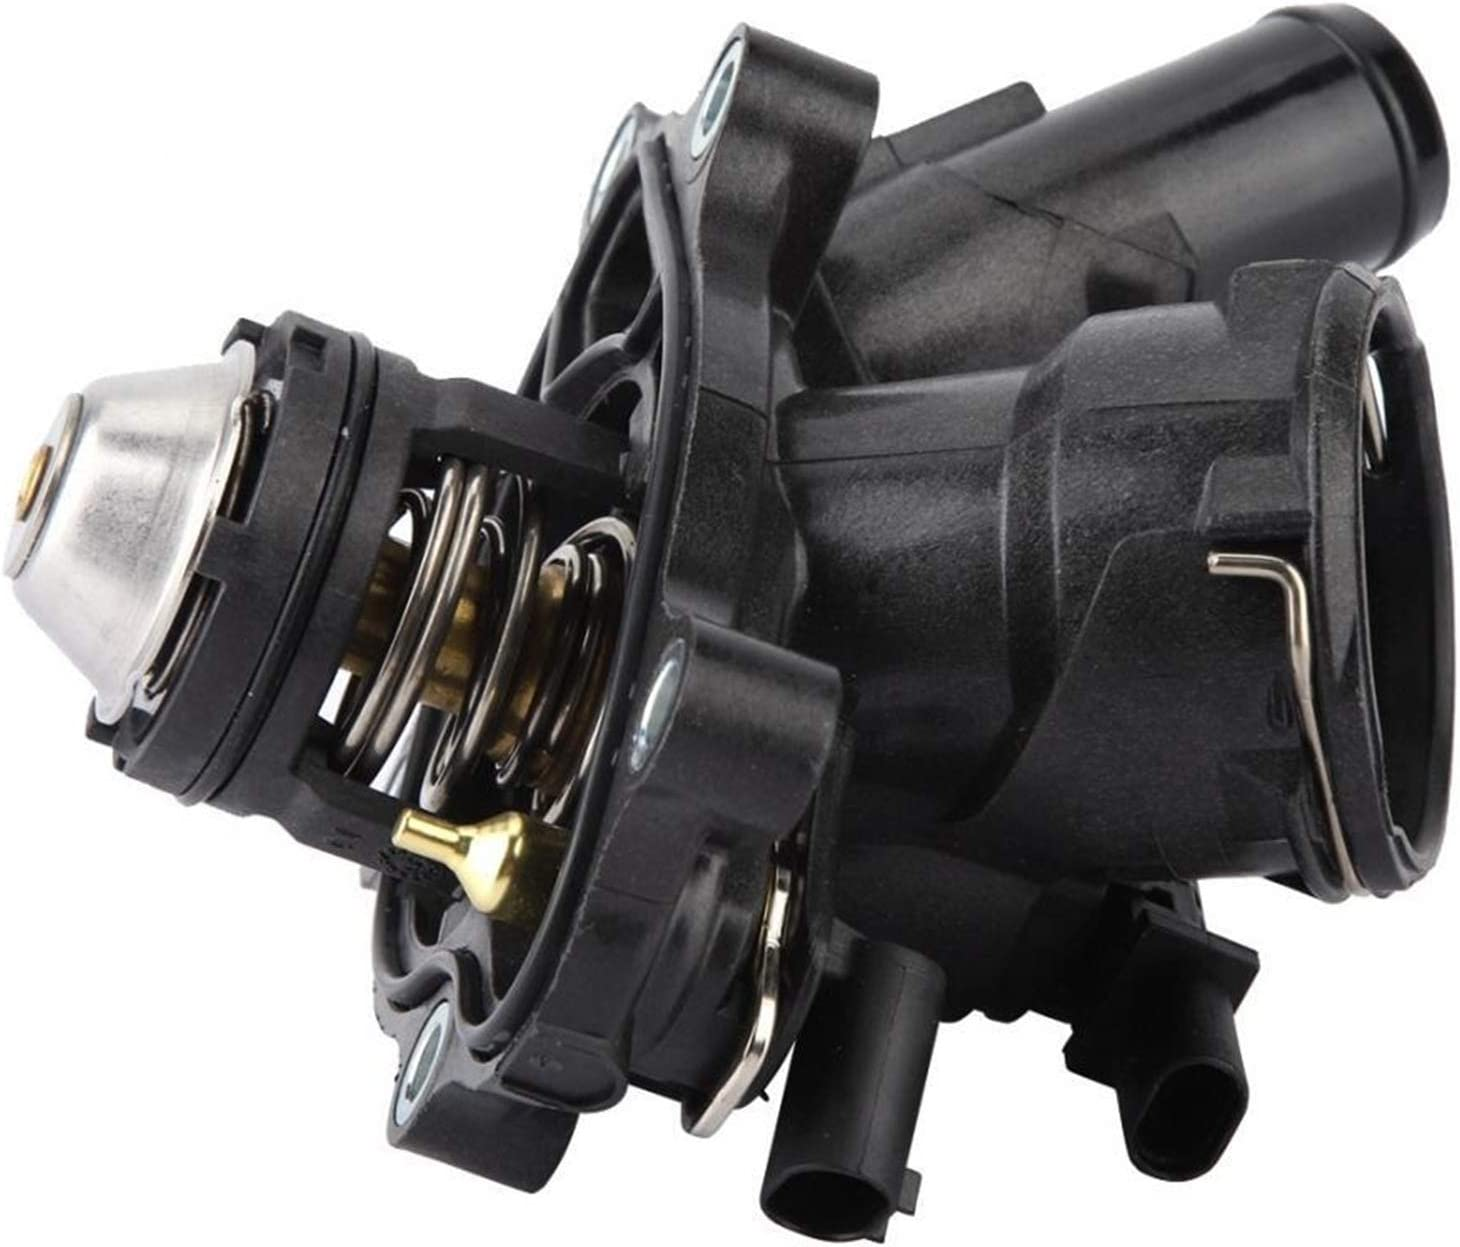 Bewitched ZHANGHANG Thermostat Housing Water Max 84% OFF Ranking TOP13 2712 Flange Coolant